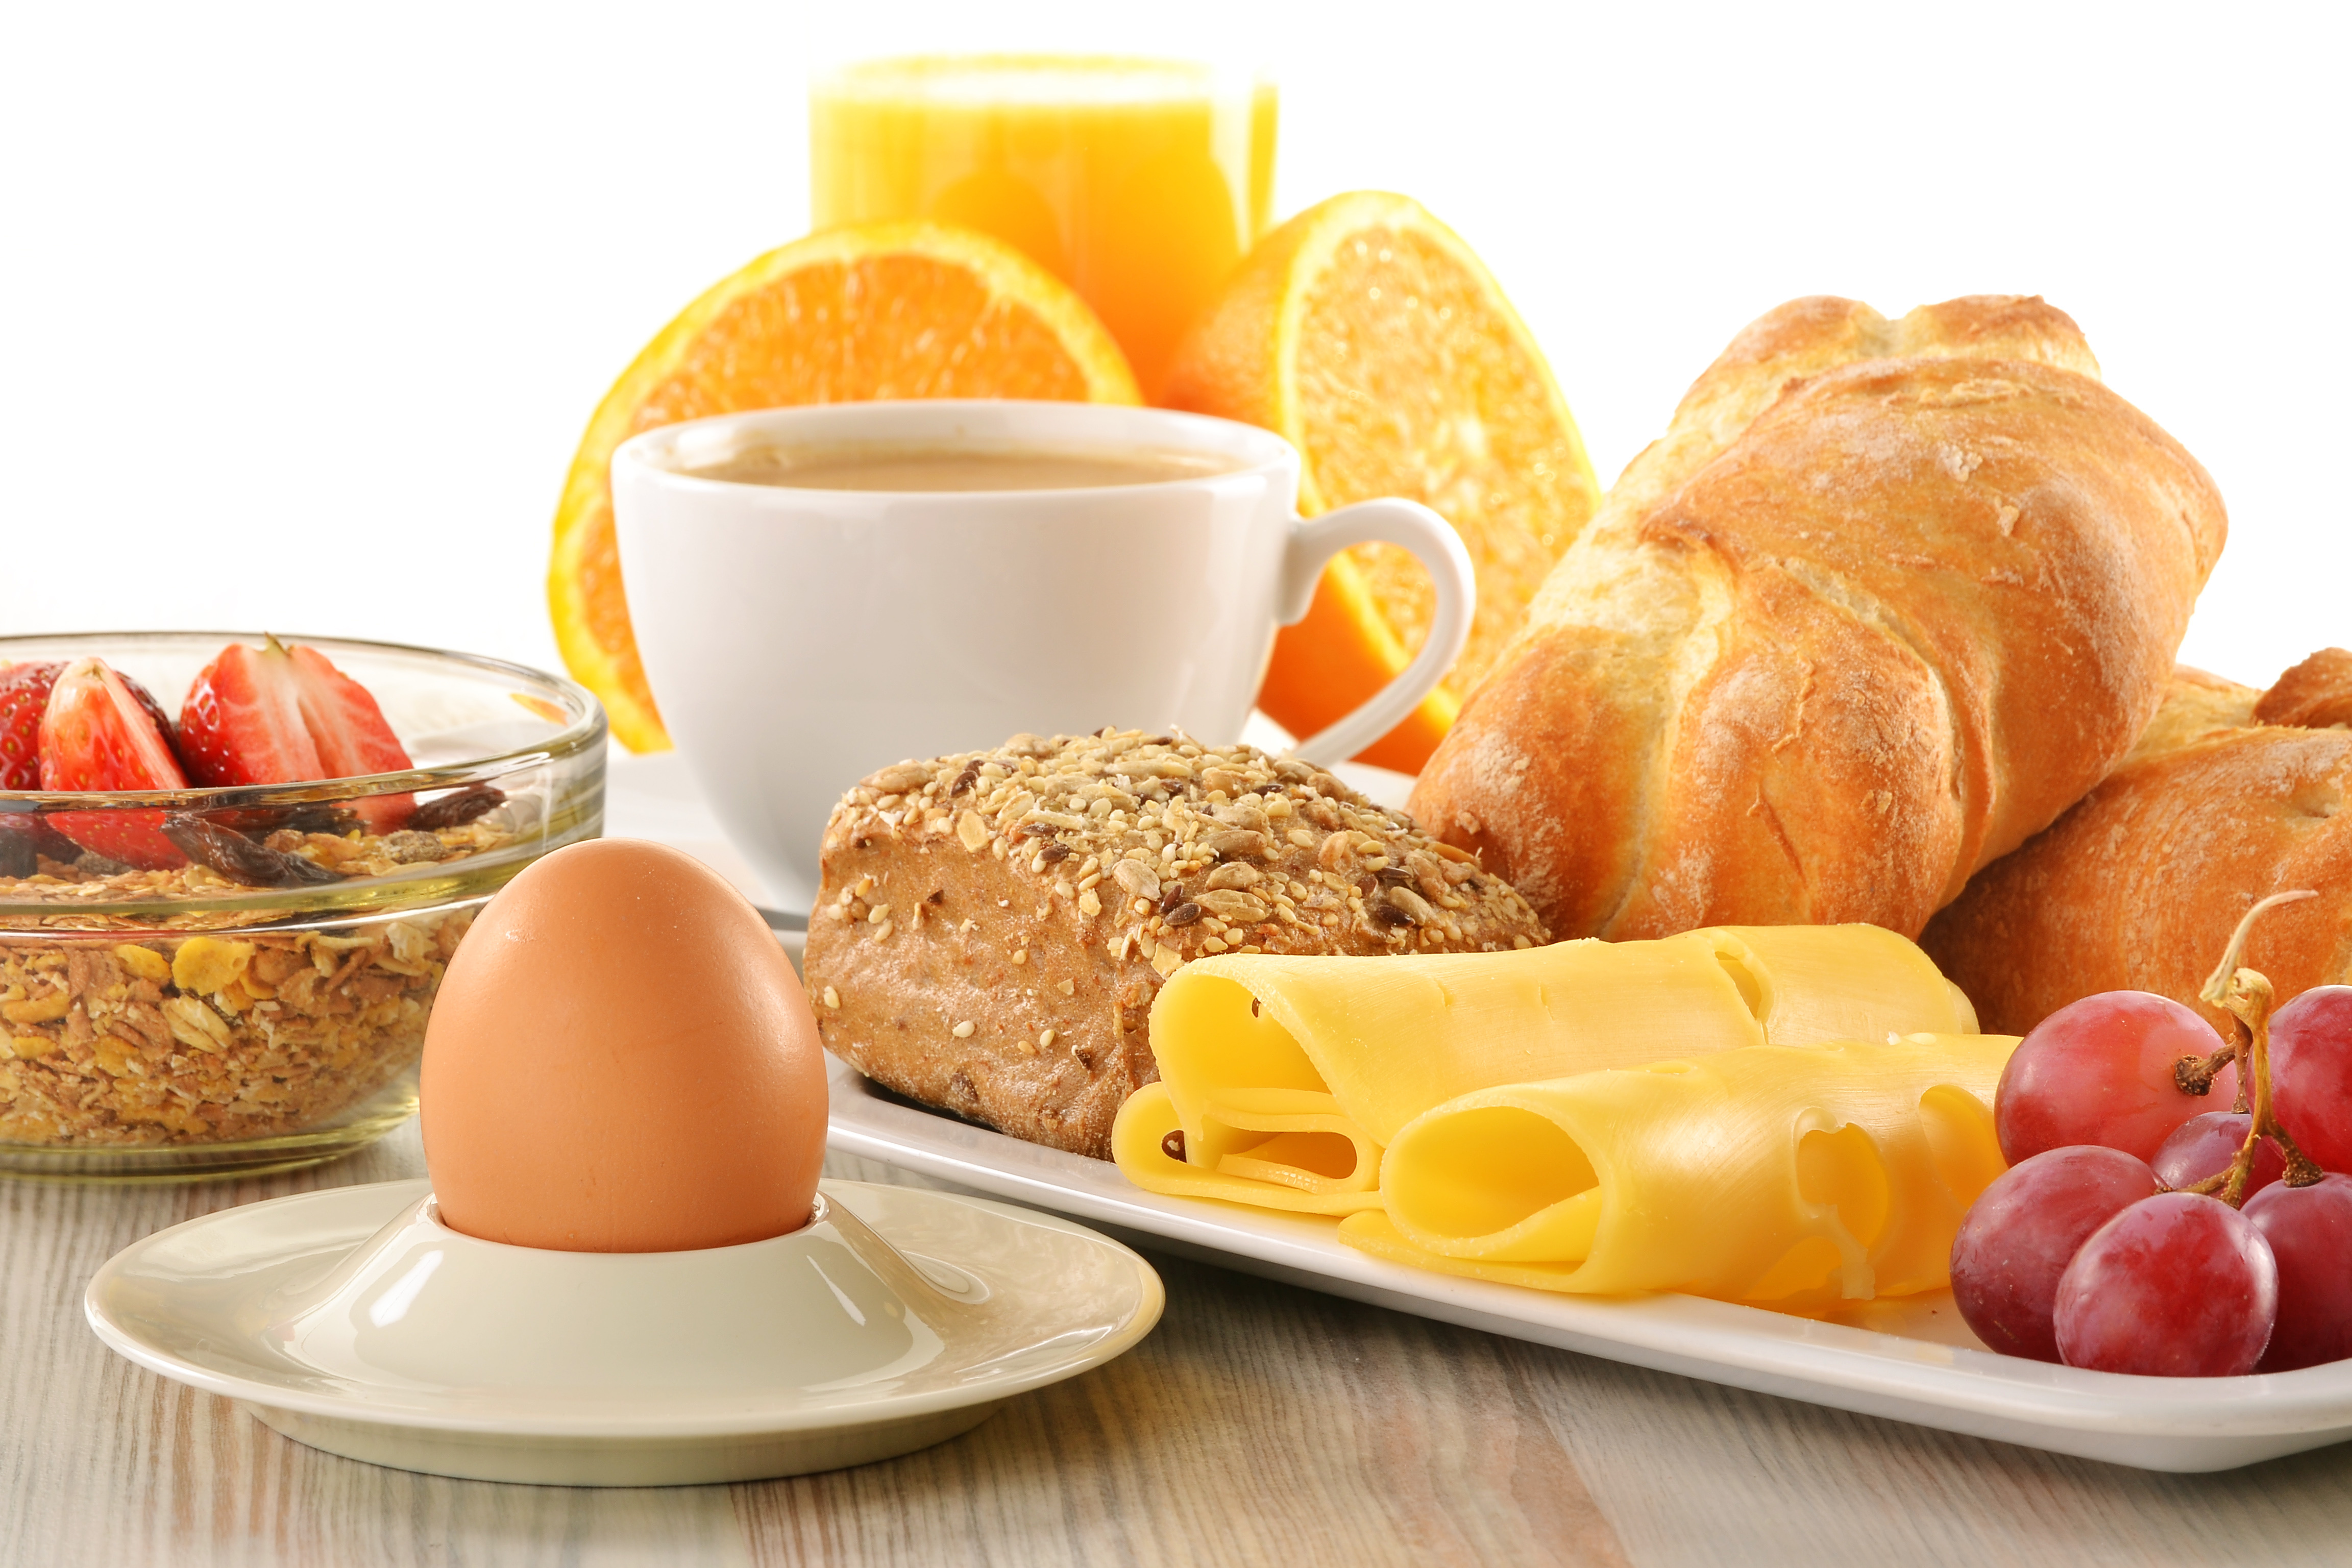 5 Quick Breakfasts For 5 Busiest Mornings